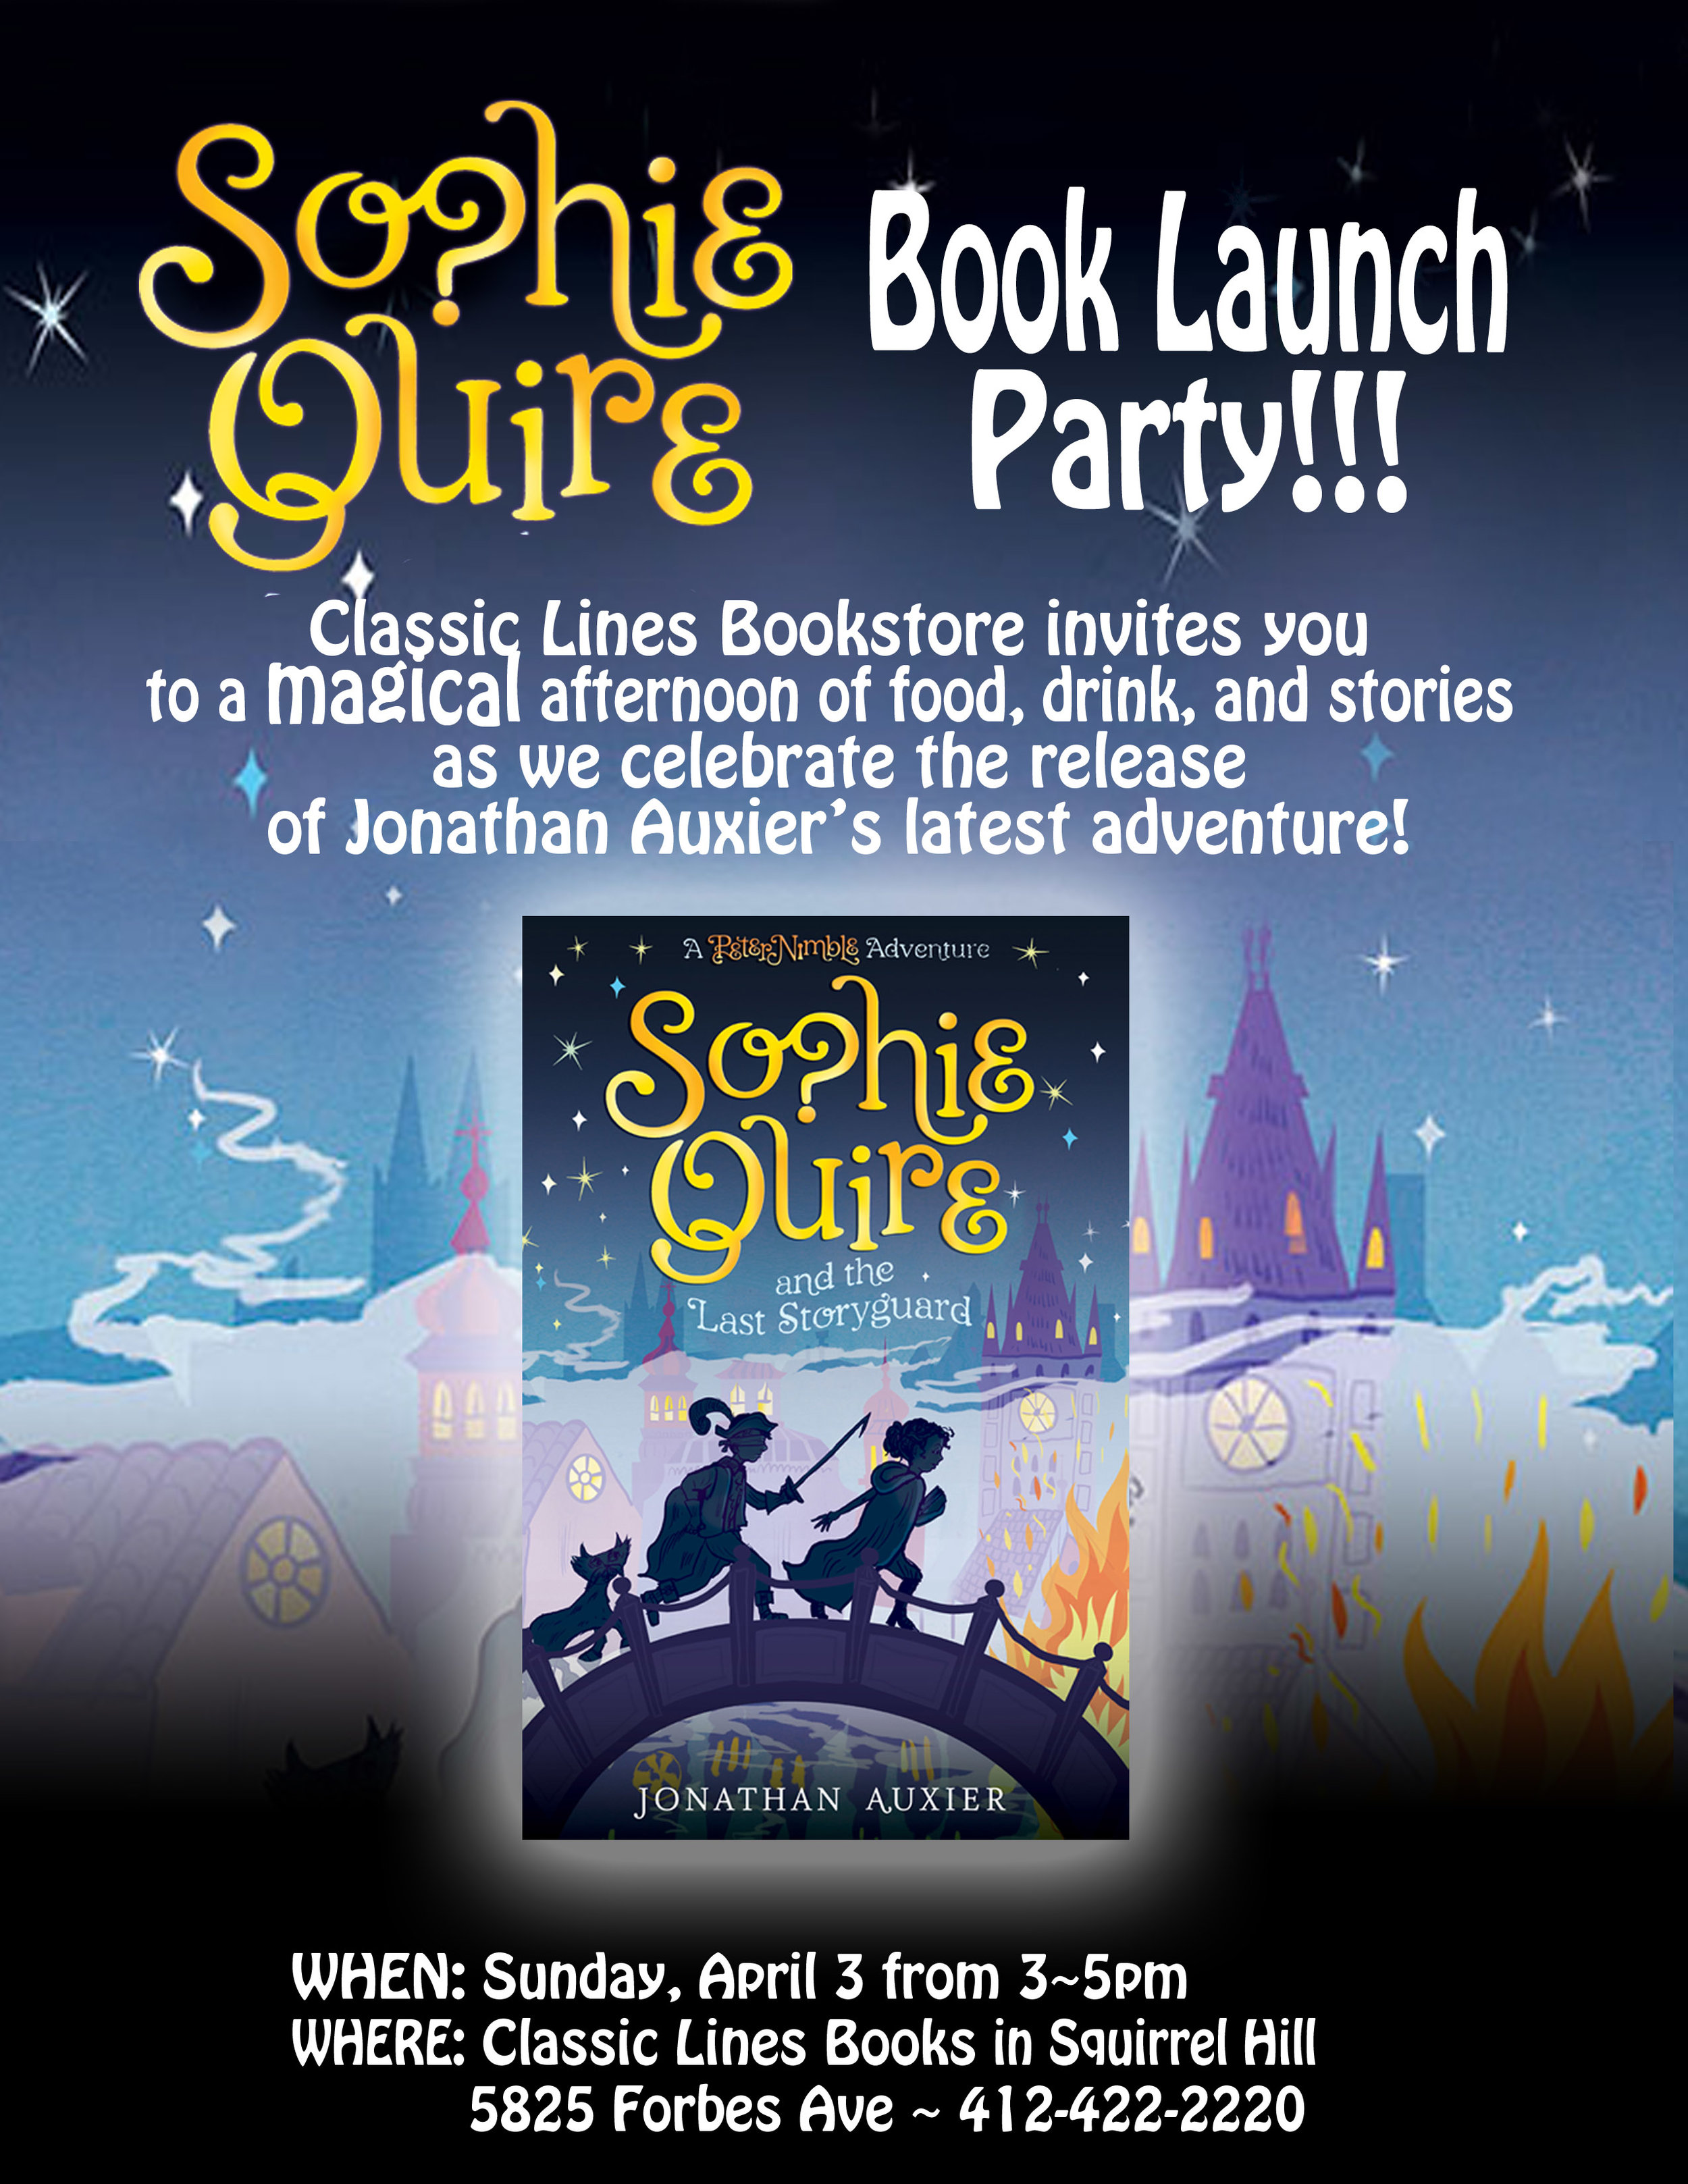 Sophie Quire Launch Invite